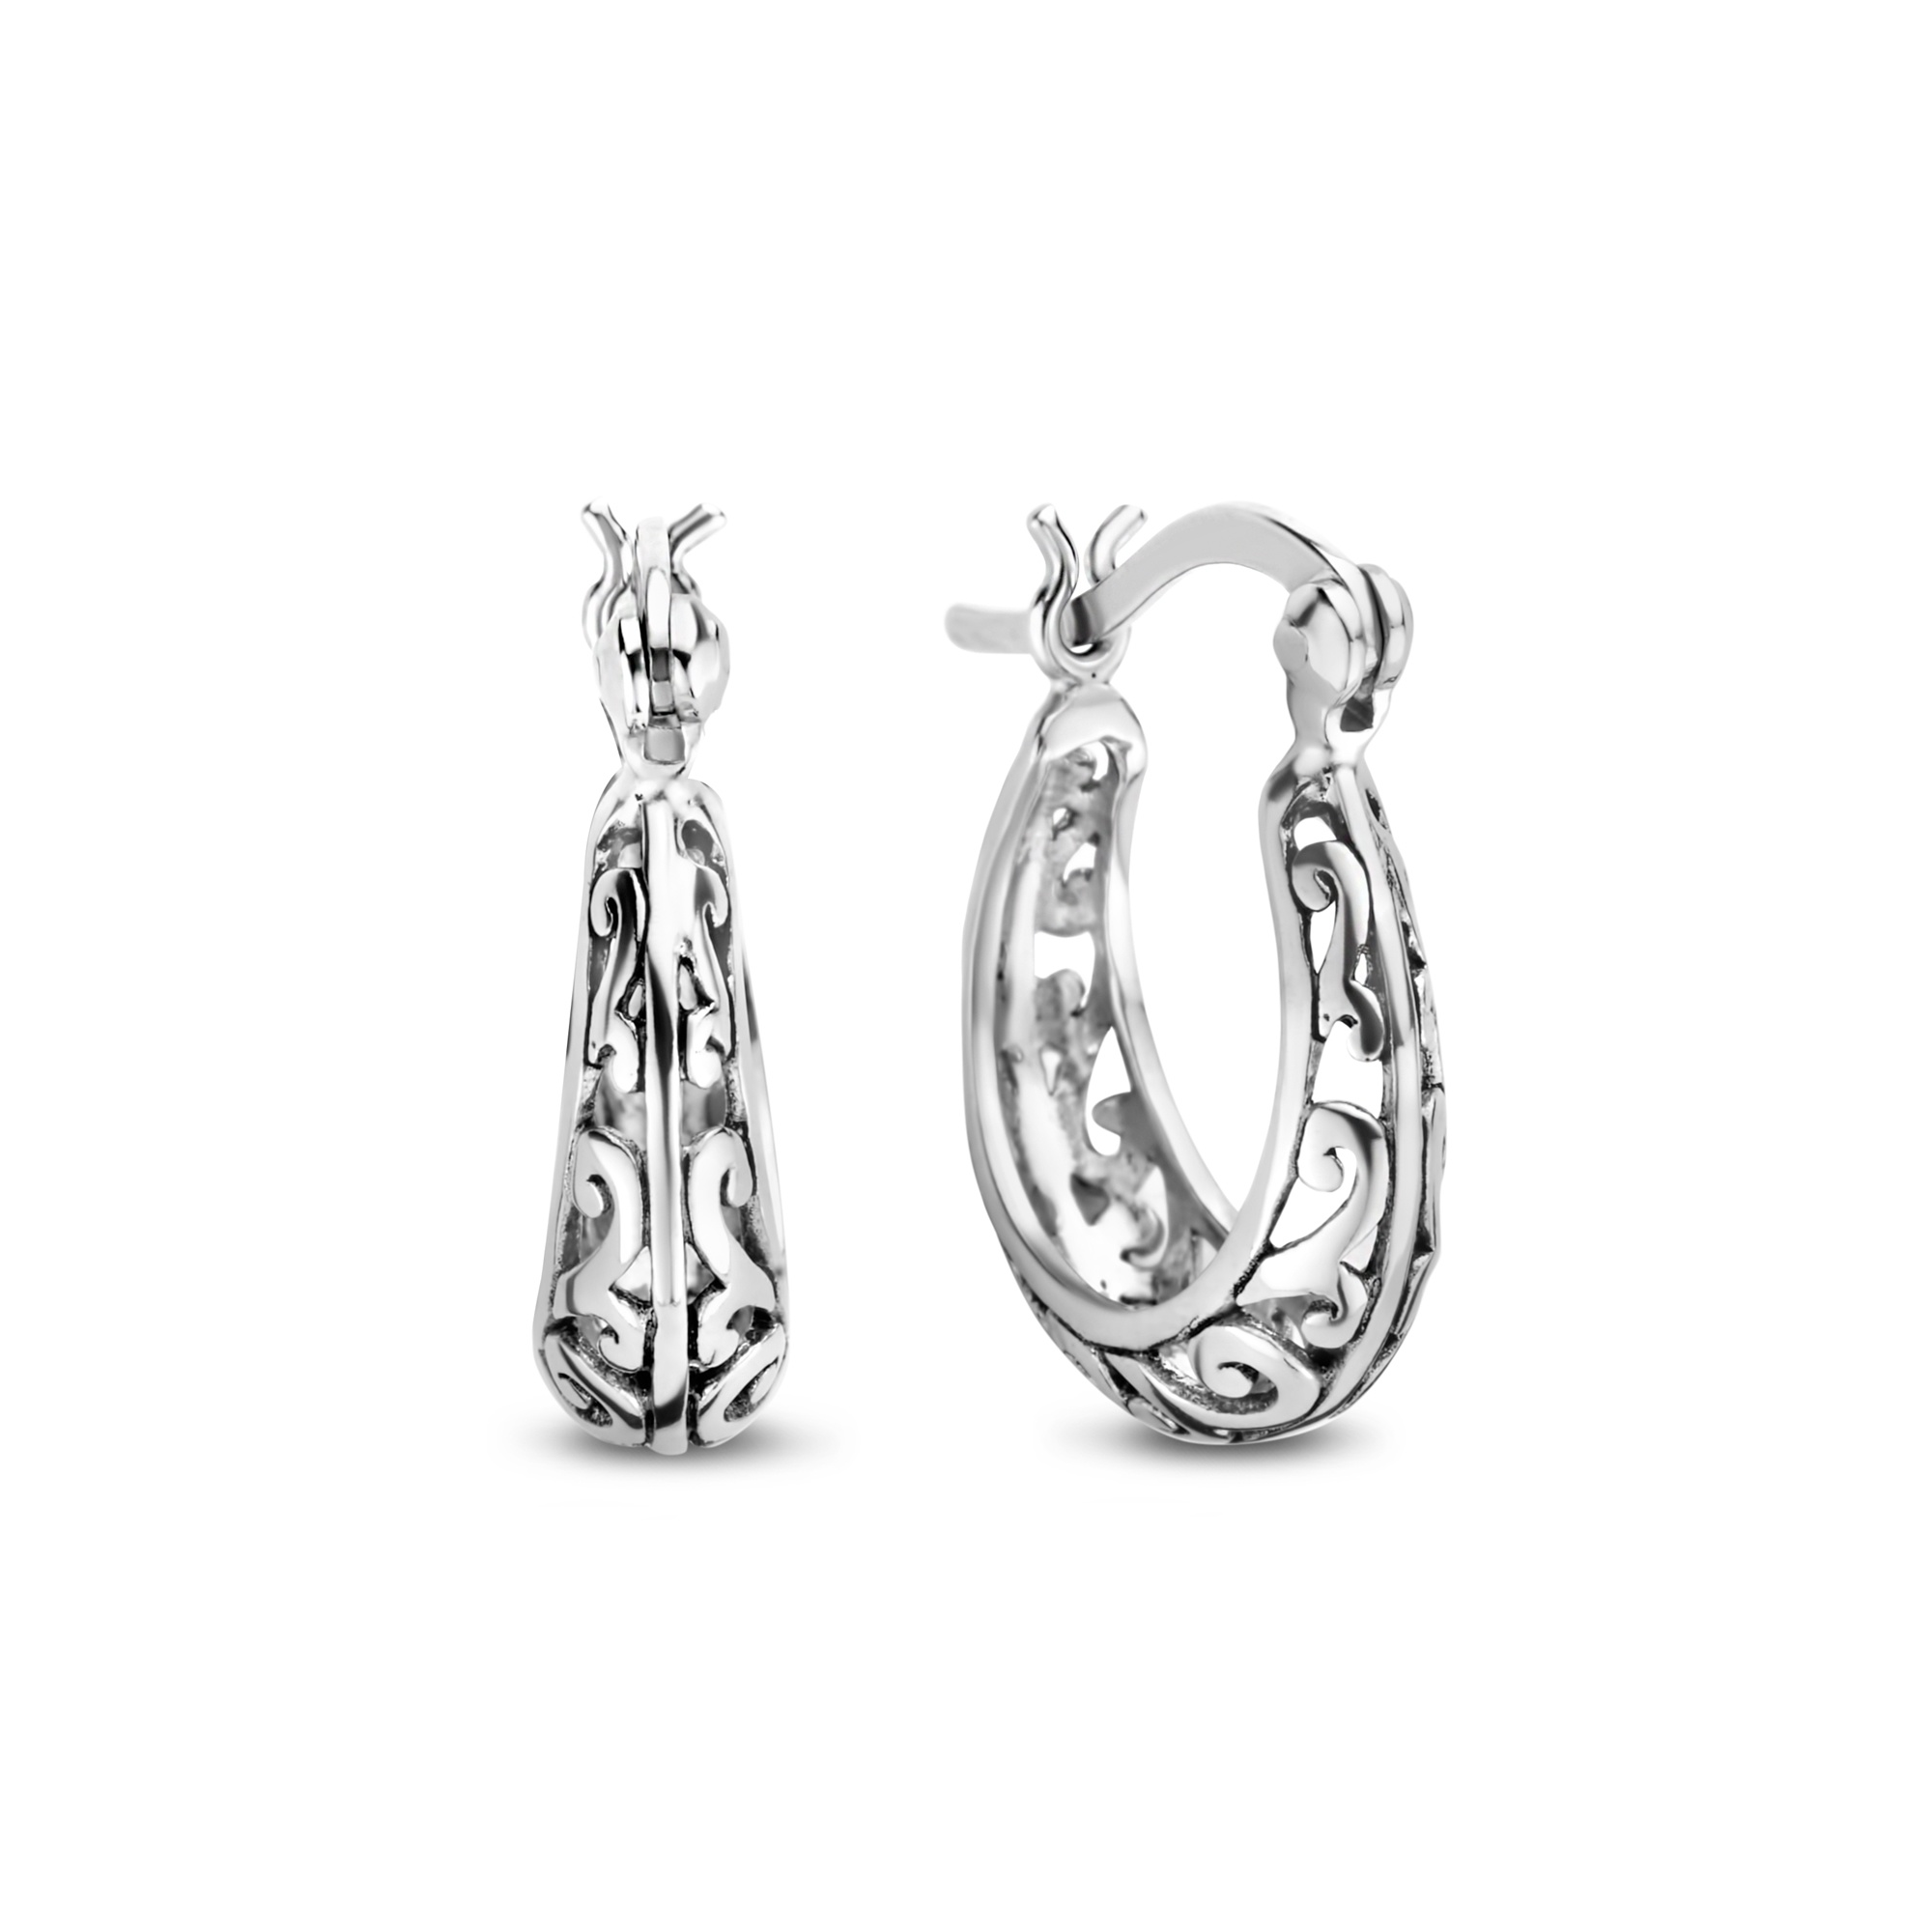 Selected Jewels Léna Claire 925 sterling silver hoop earrings